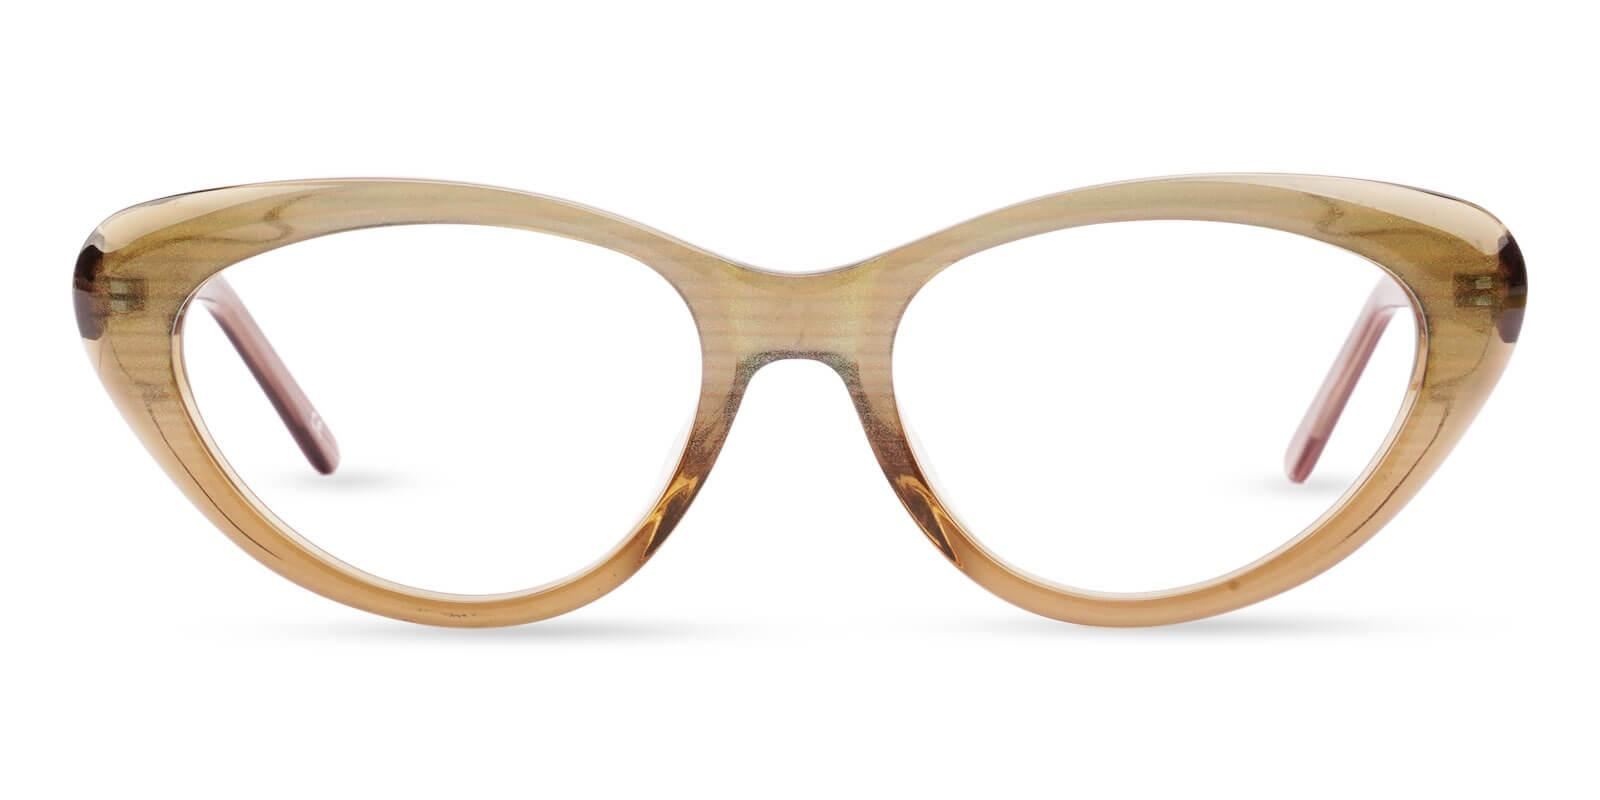 Irene Brown Acetate Eyeglasses , SpringHinges , UniversalBridgeFit Frames from ABBE Glasses